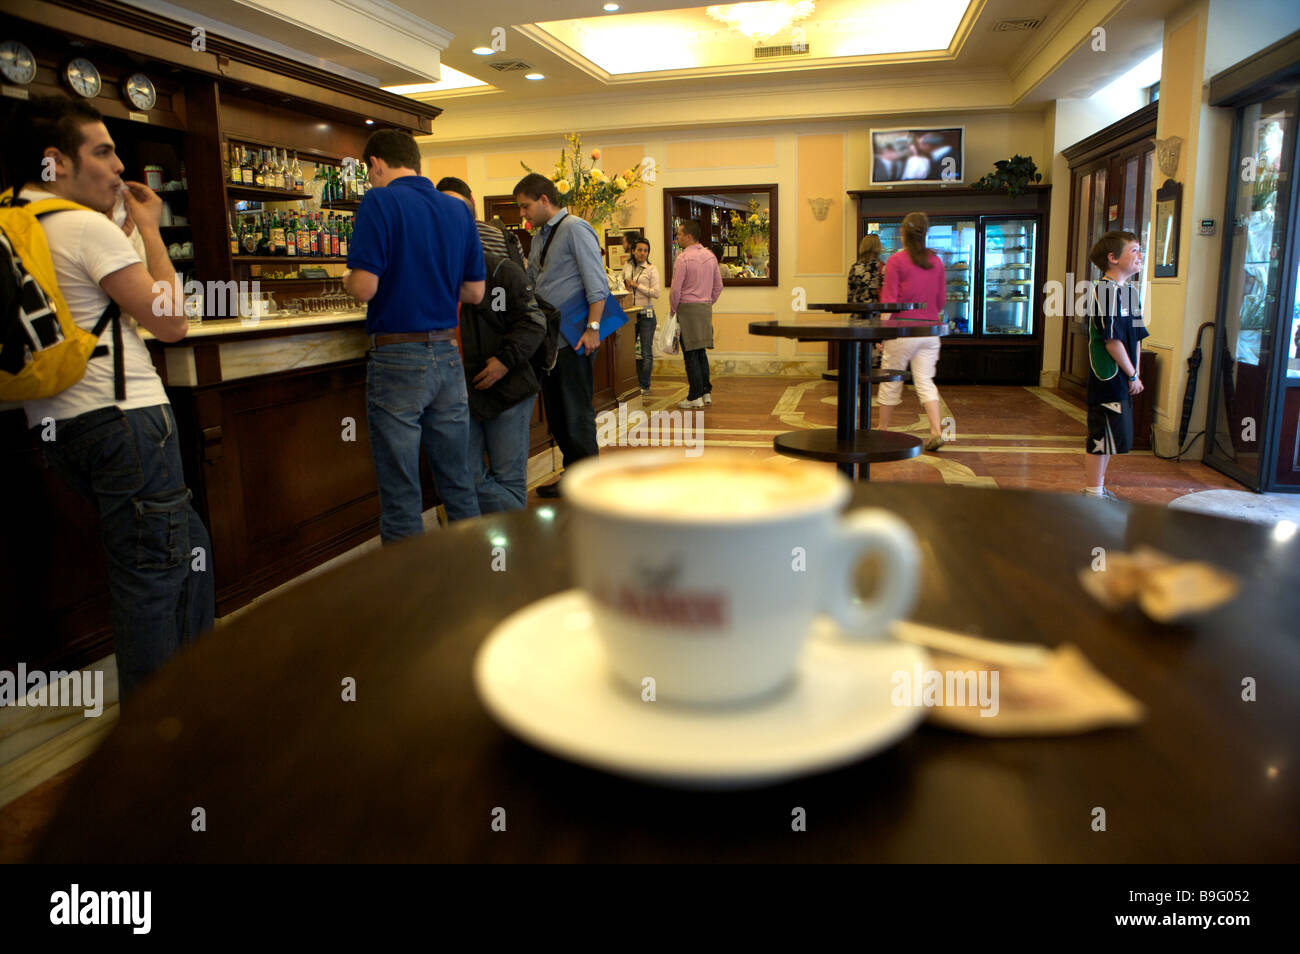 A coffee shop in Siena with a cup of coffee in the foreground and people in the background - Stock Image